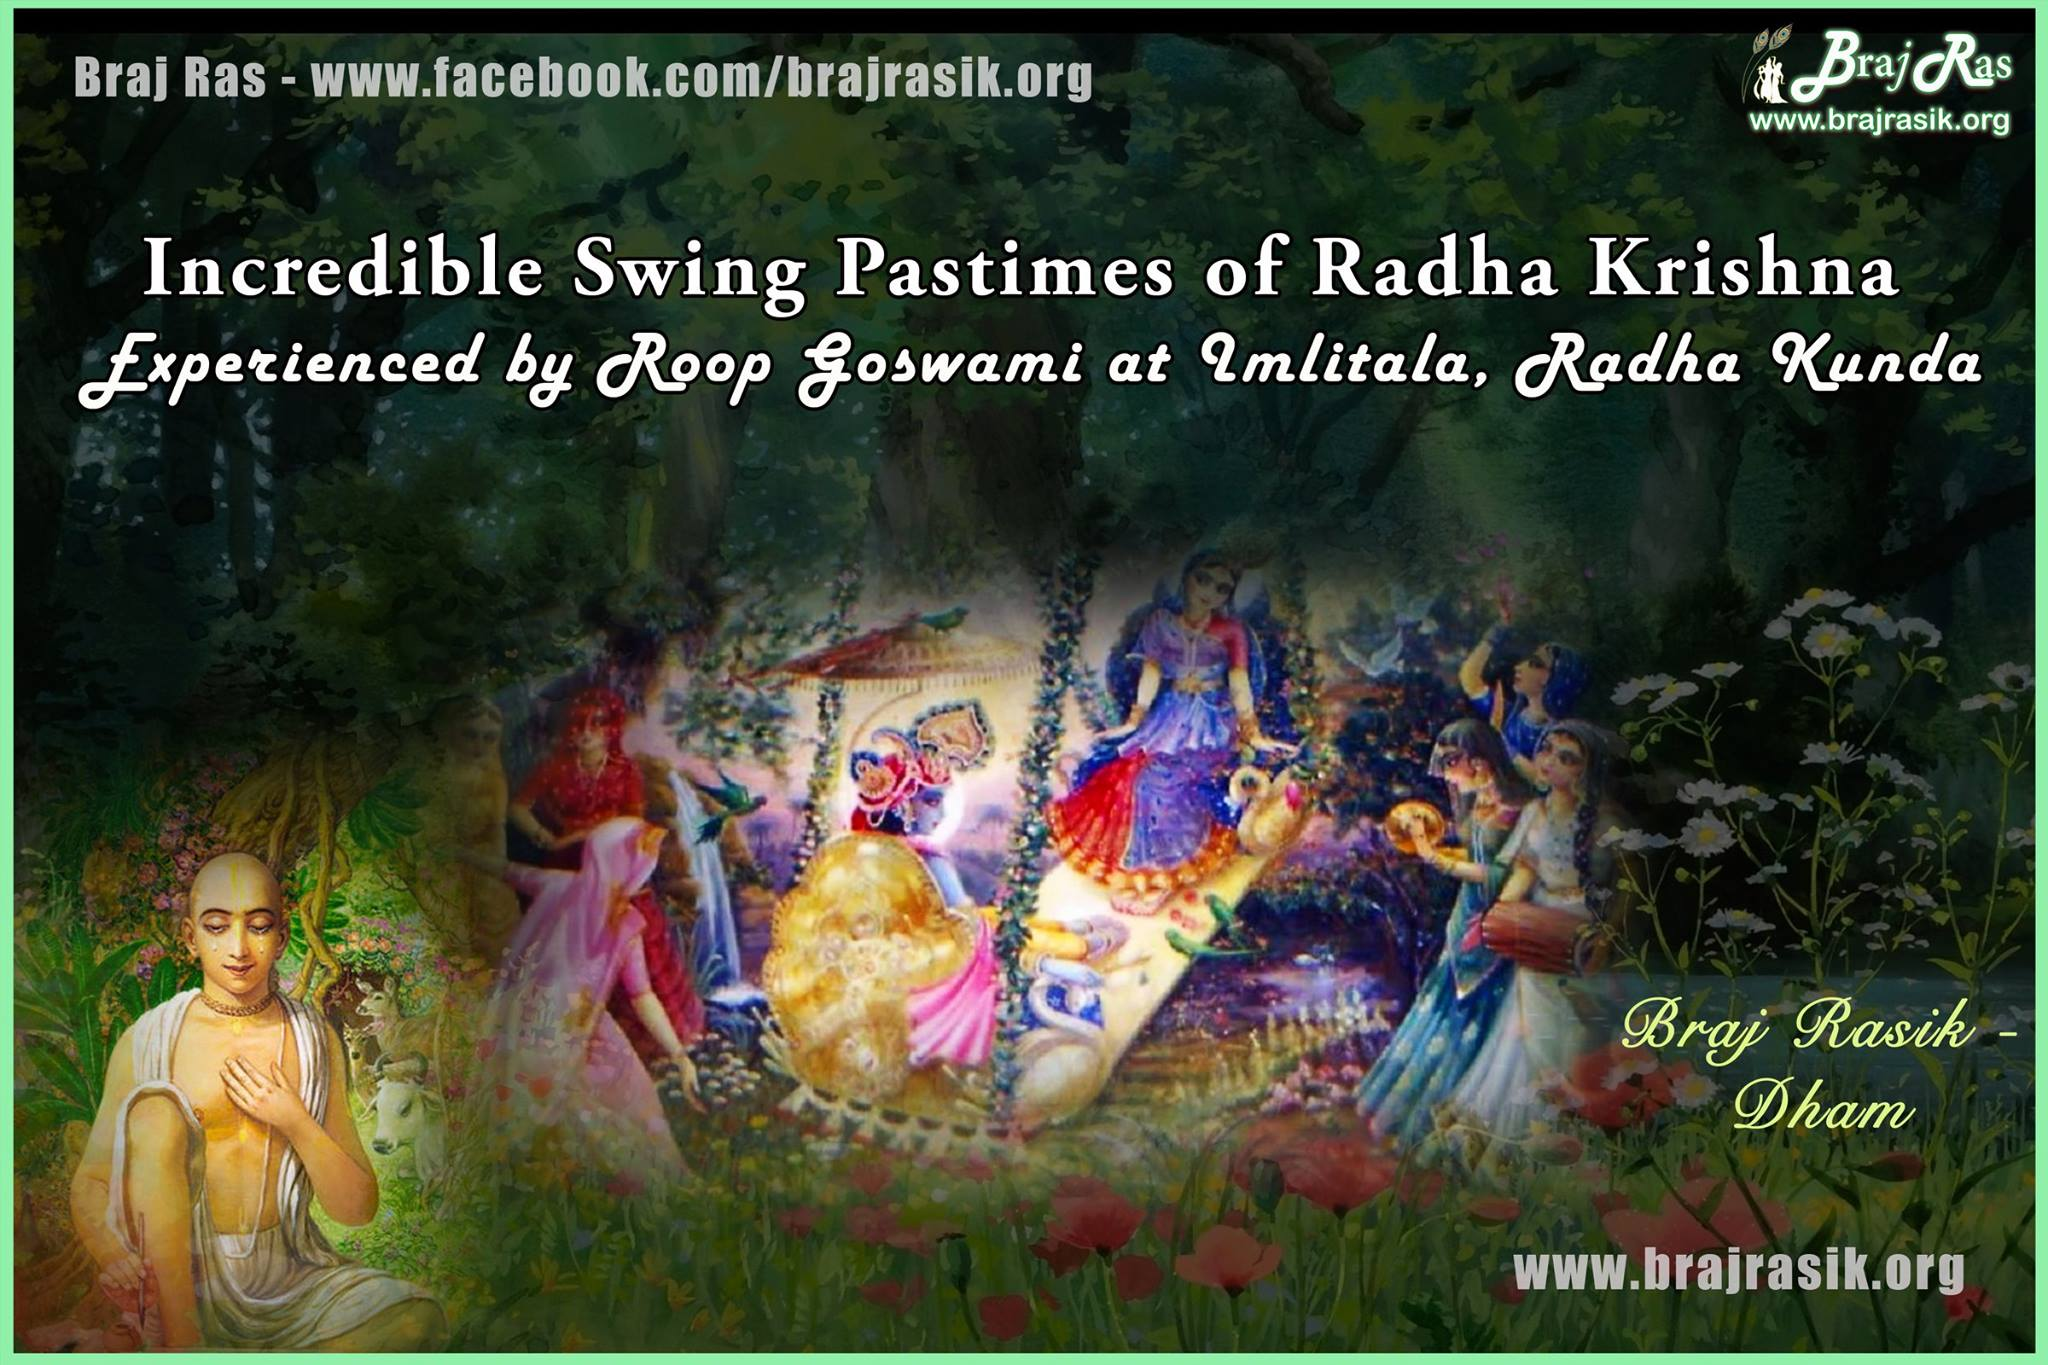 Incredible Swing Pastimes of Radha Krishna  experienced by Roop Goswami at Imlitala, Radha Kunda